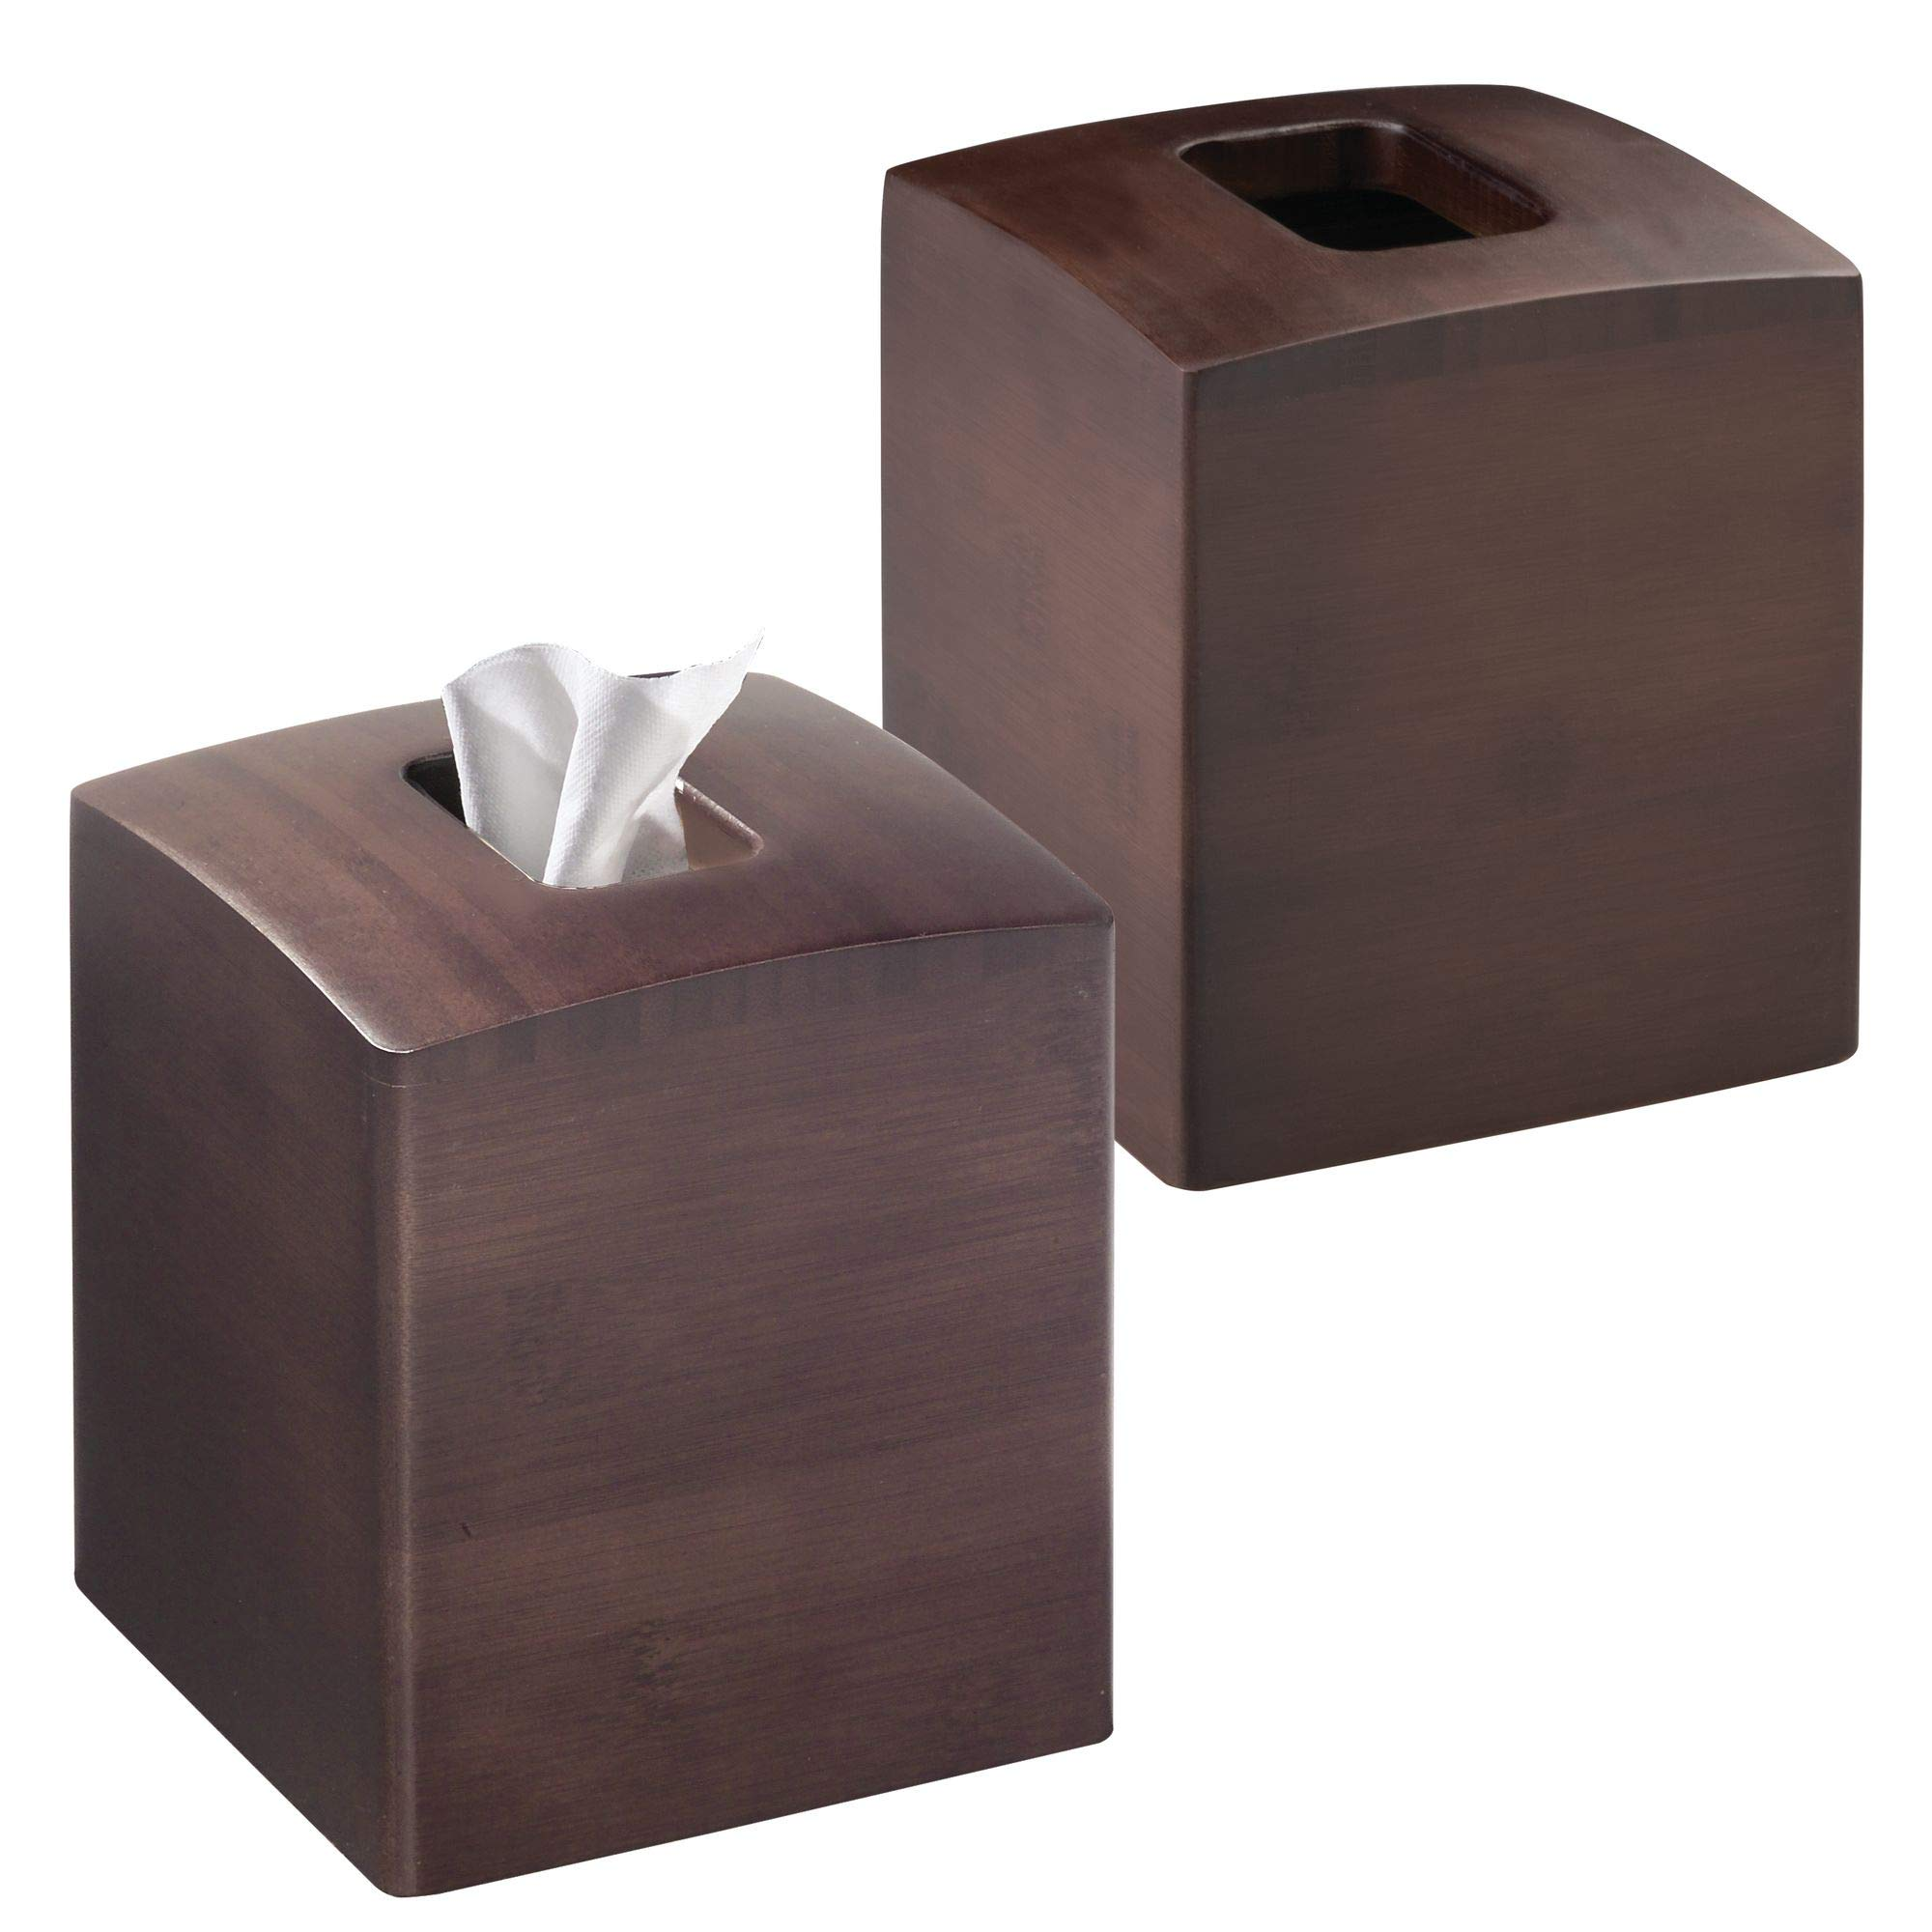 mDesign Square Wood Bamboo Facial Tissue Paper Box Cover Holder for Bathroom Vanity Counter Tops, Bedroom Dressers, Night Stands, Desks and Tables - Pack of 2, Espresso/Dark Brown Finish